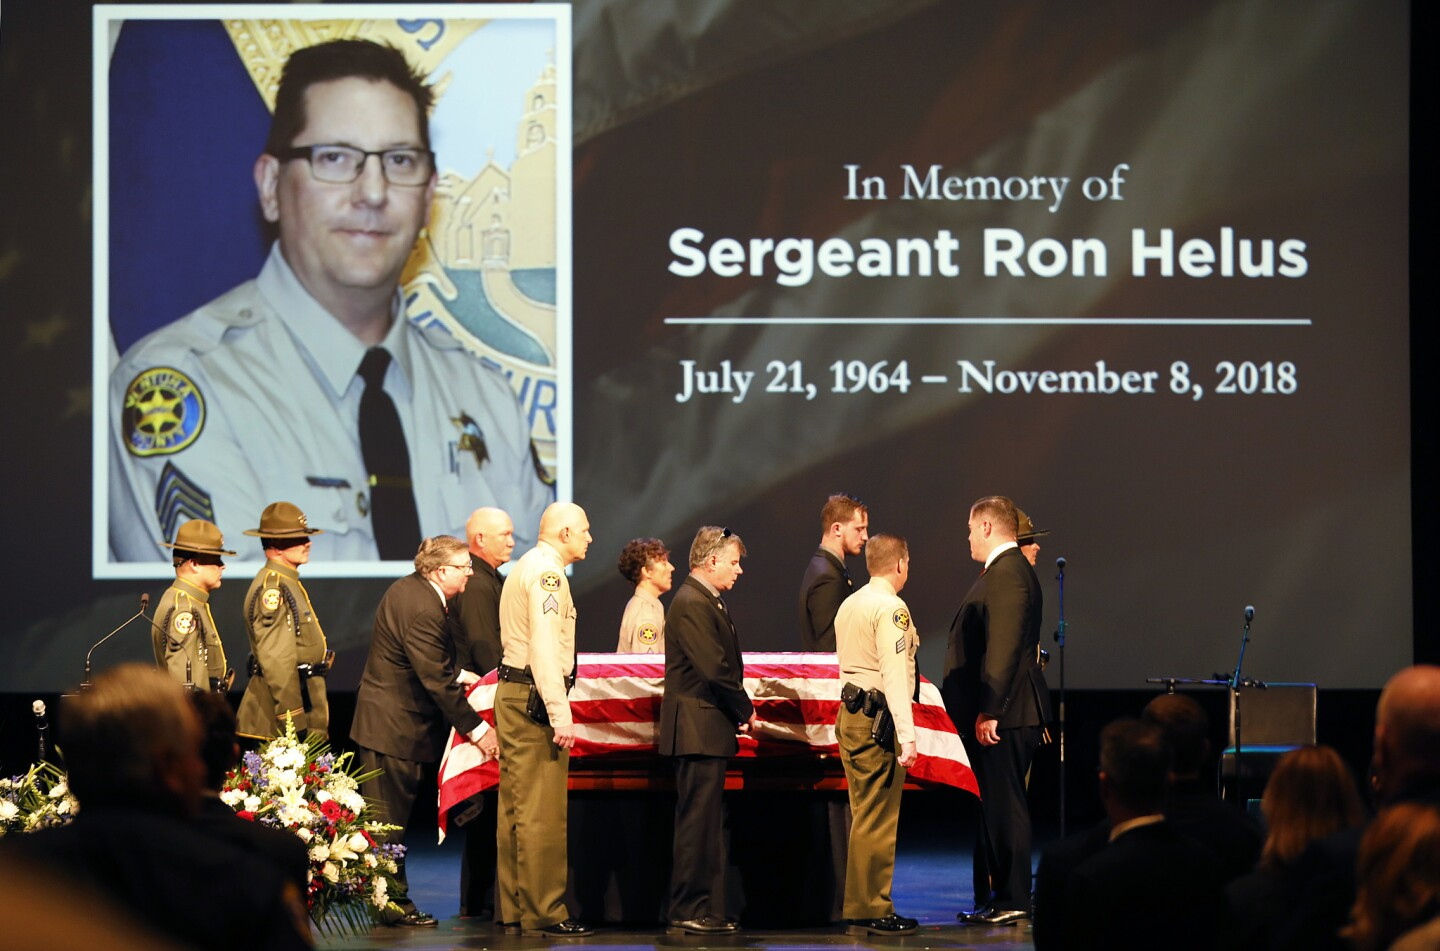 The flag-draped casket of Ventura County Sheriff's Sgt. Ron Helus arrives onstage for a memorial service Thursday at Calvary Community Church in Westlake Village.